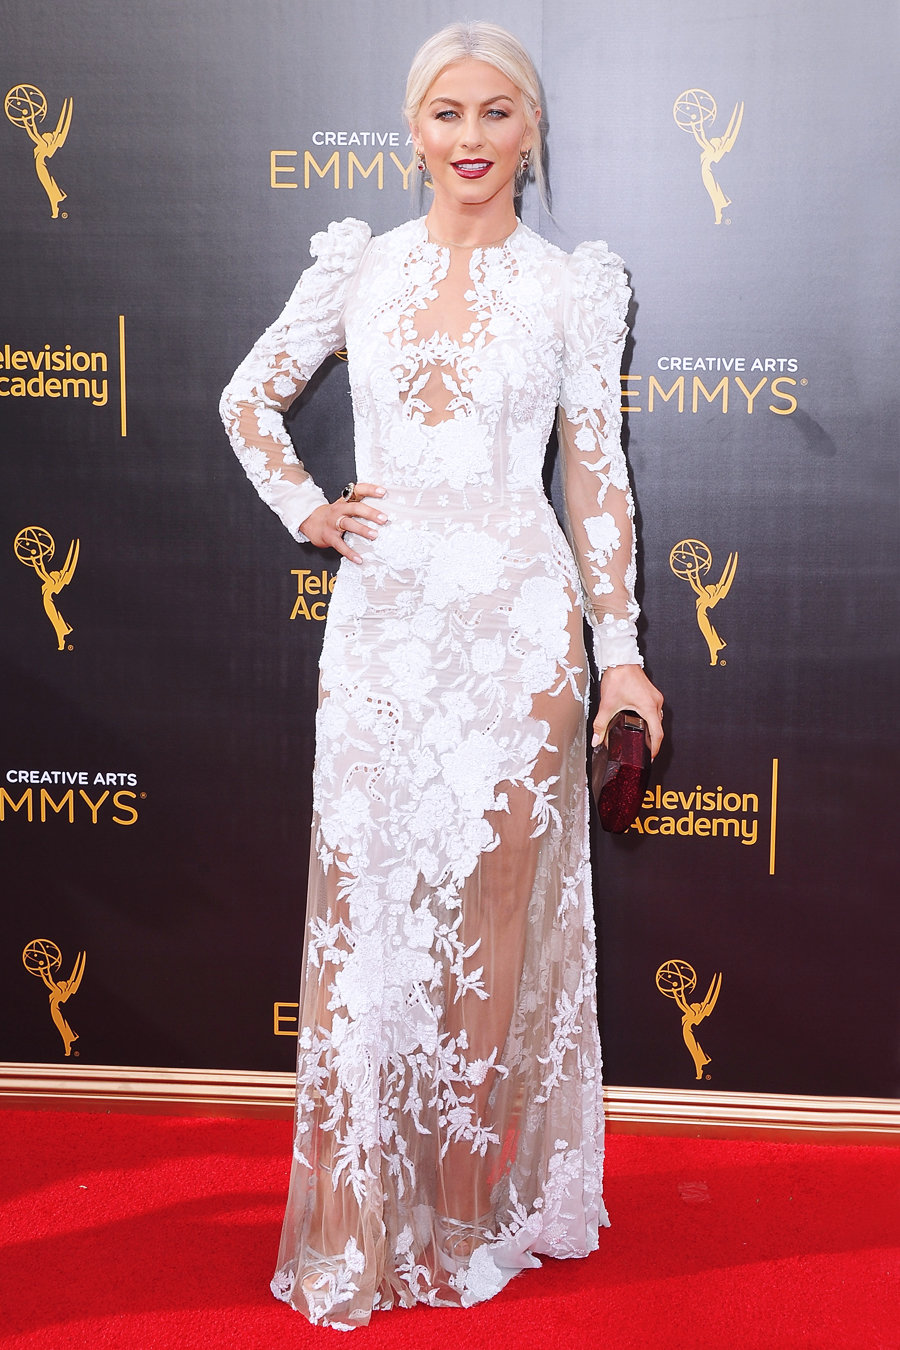 Creative Emmys Arrivals Hough - Embed 2016